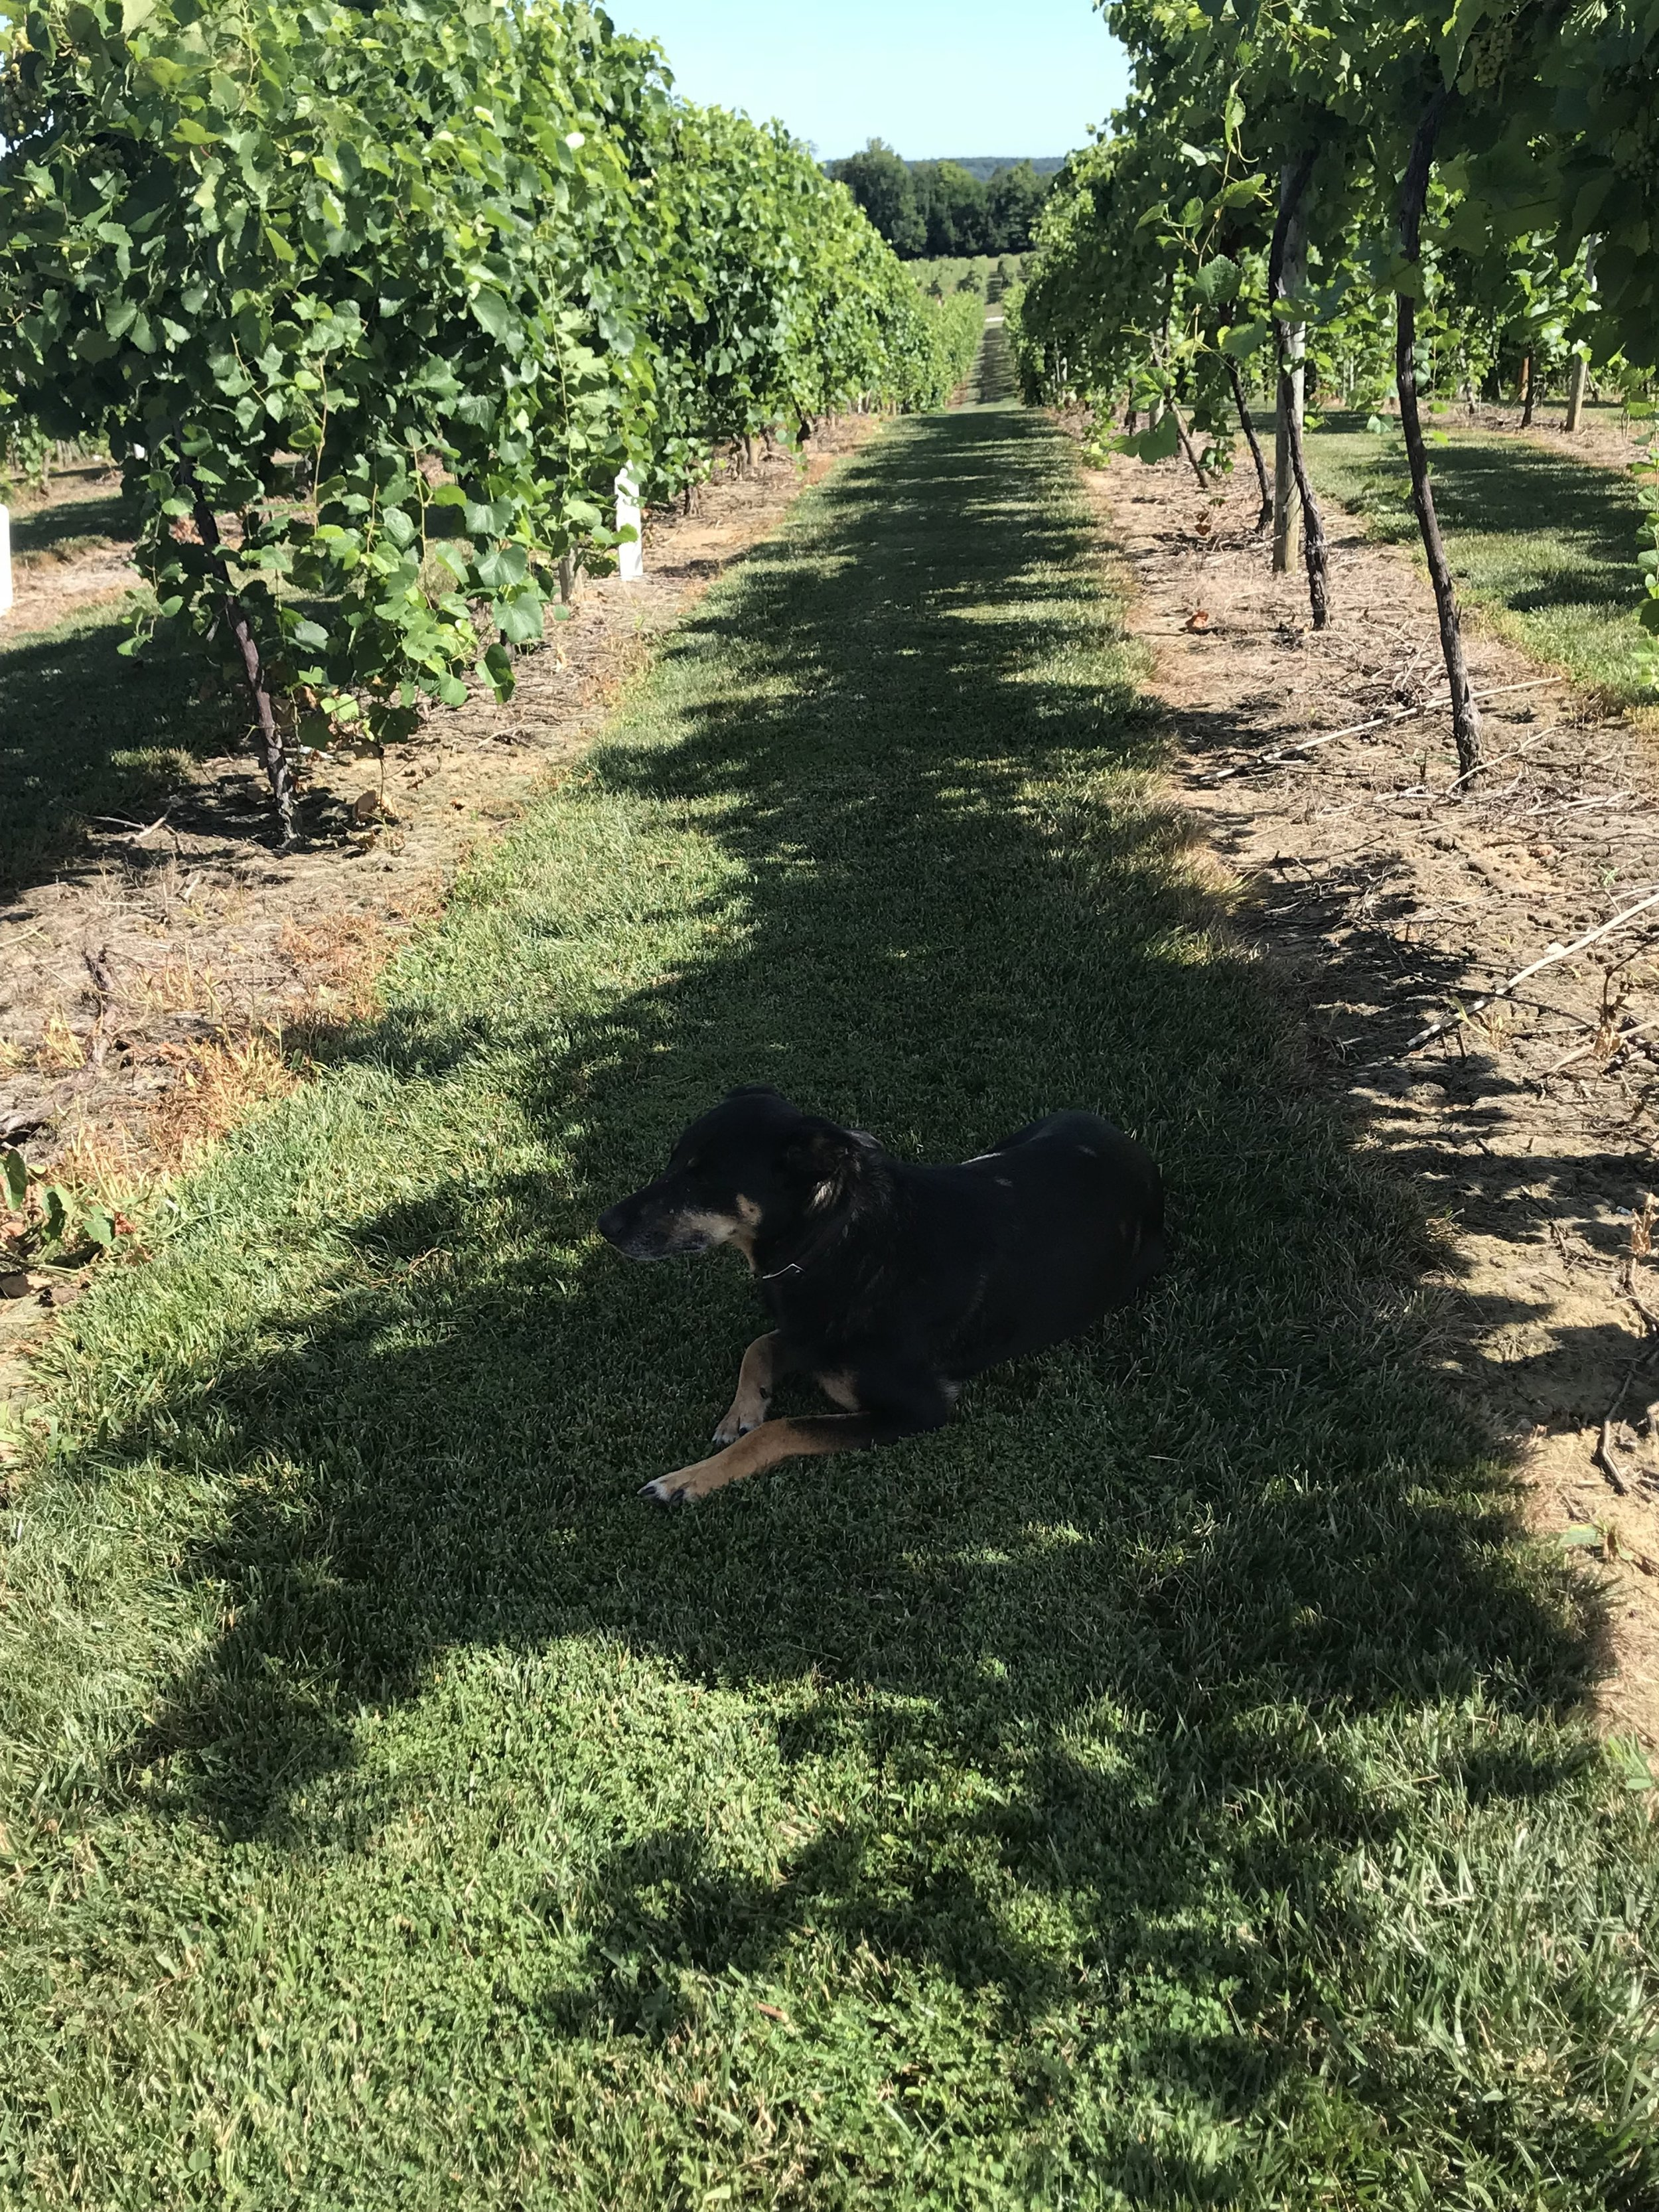 Shown here: your friendly local vineyard dog